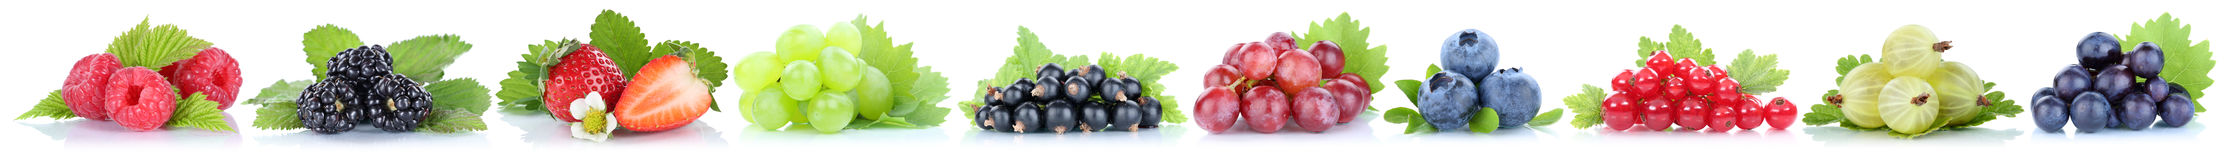 Collection of berries grapes strawberries blueberries berry orga Royalty Free Stock Photography